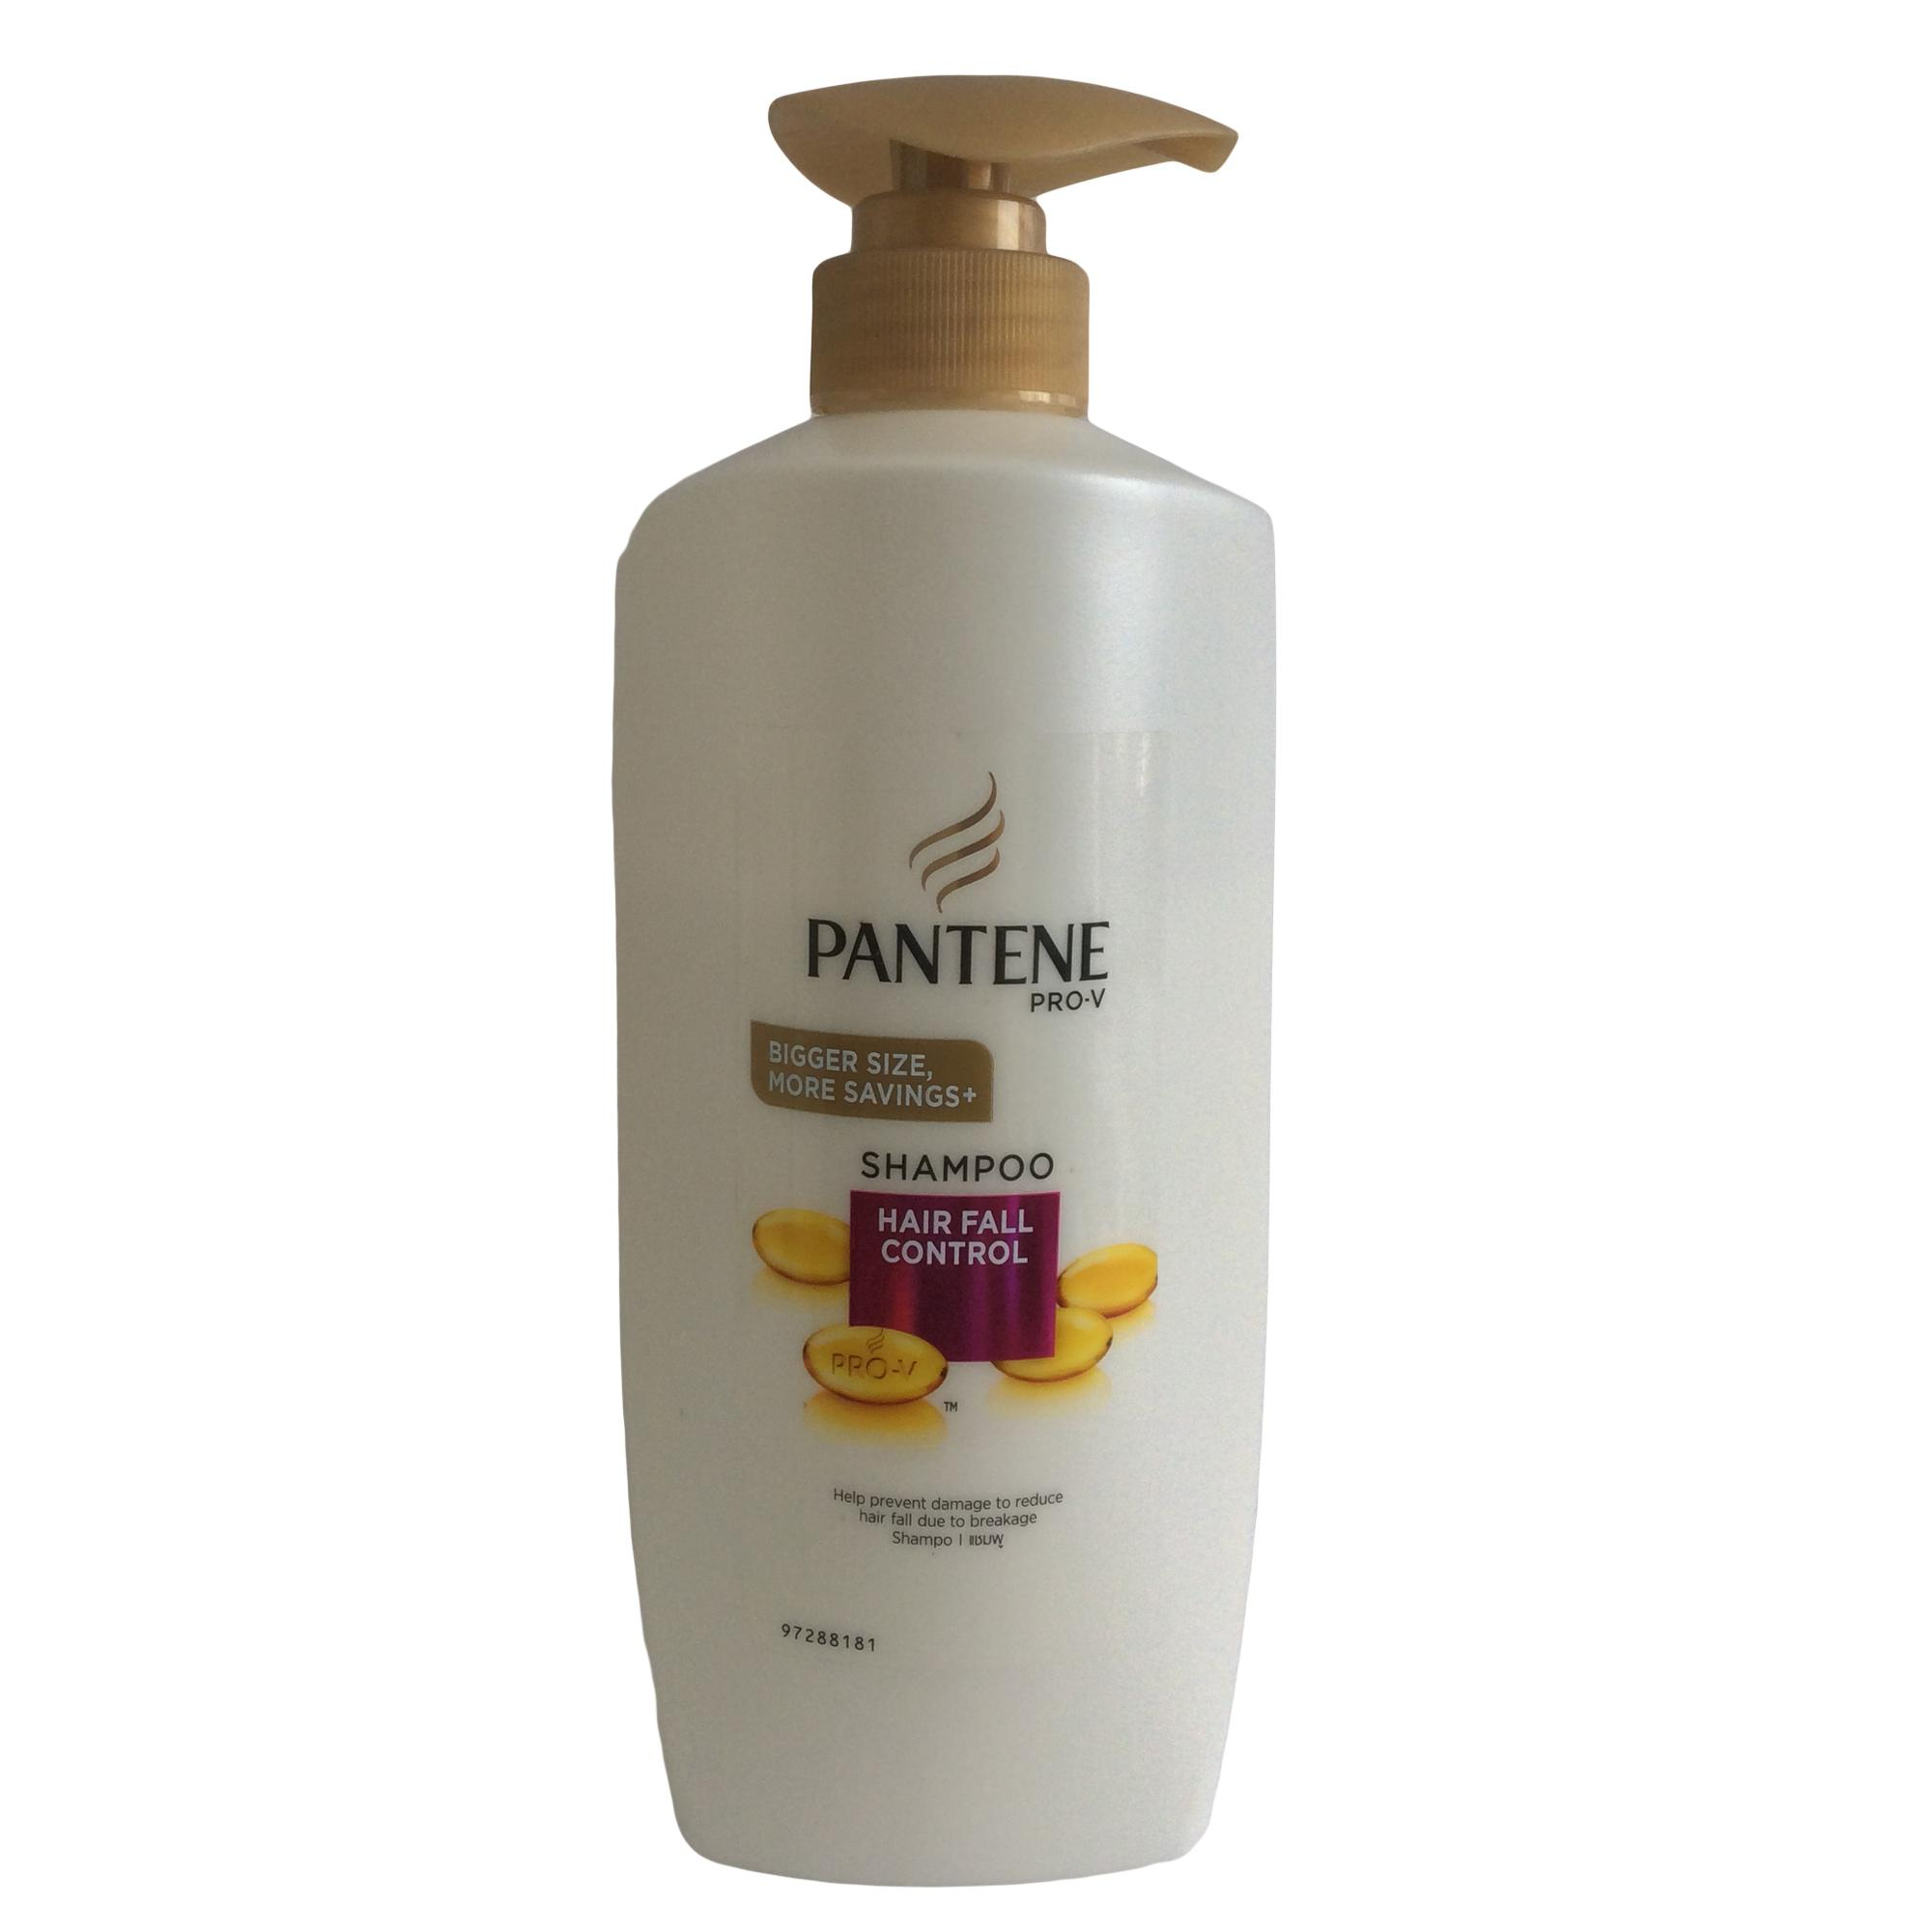 Sell Pantene Shampoo Hfc Cheapest Best Quality Ph Store Pro V Hair Fall Control 480ml Php 385